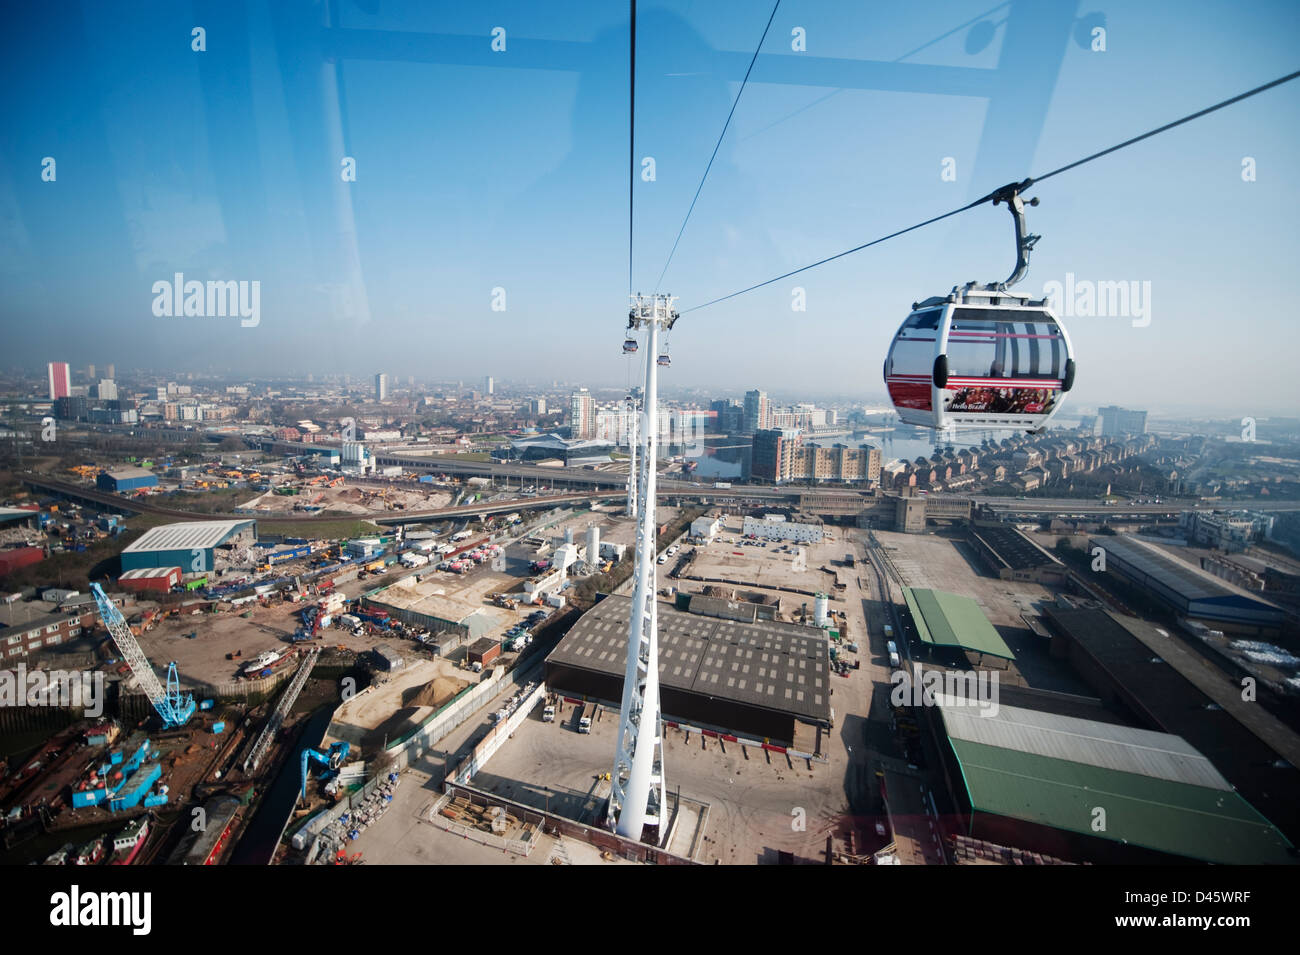 Aerial view north from the Emirates Air Line cablecar with Royal Victoria Docks in the distance, London, UK - Stock Image